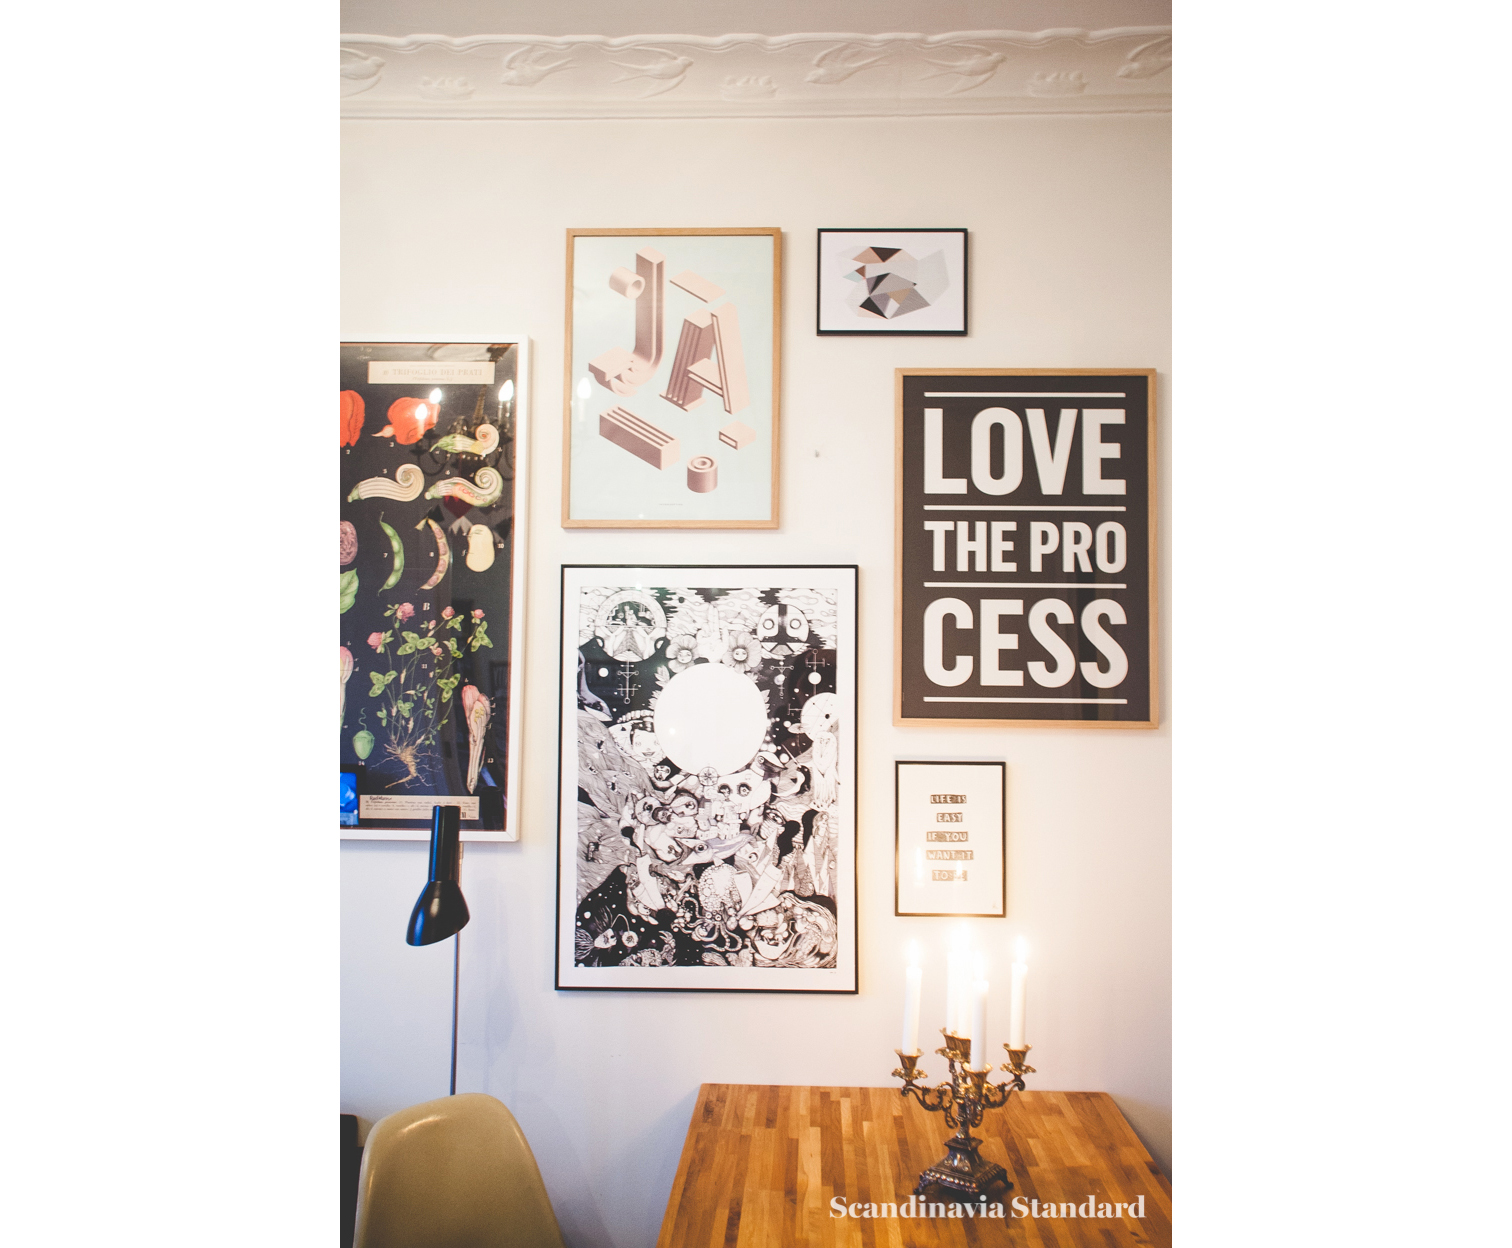 Scandinavia Standard I LOVE MY TYPE Dining Room Table with Candles and Posters